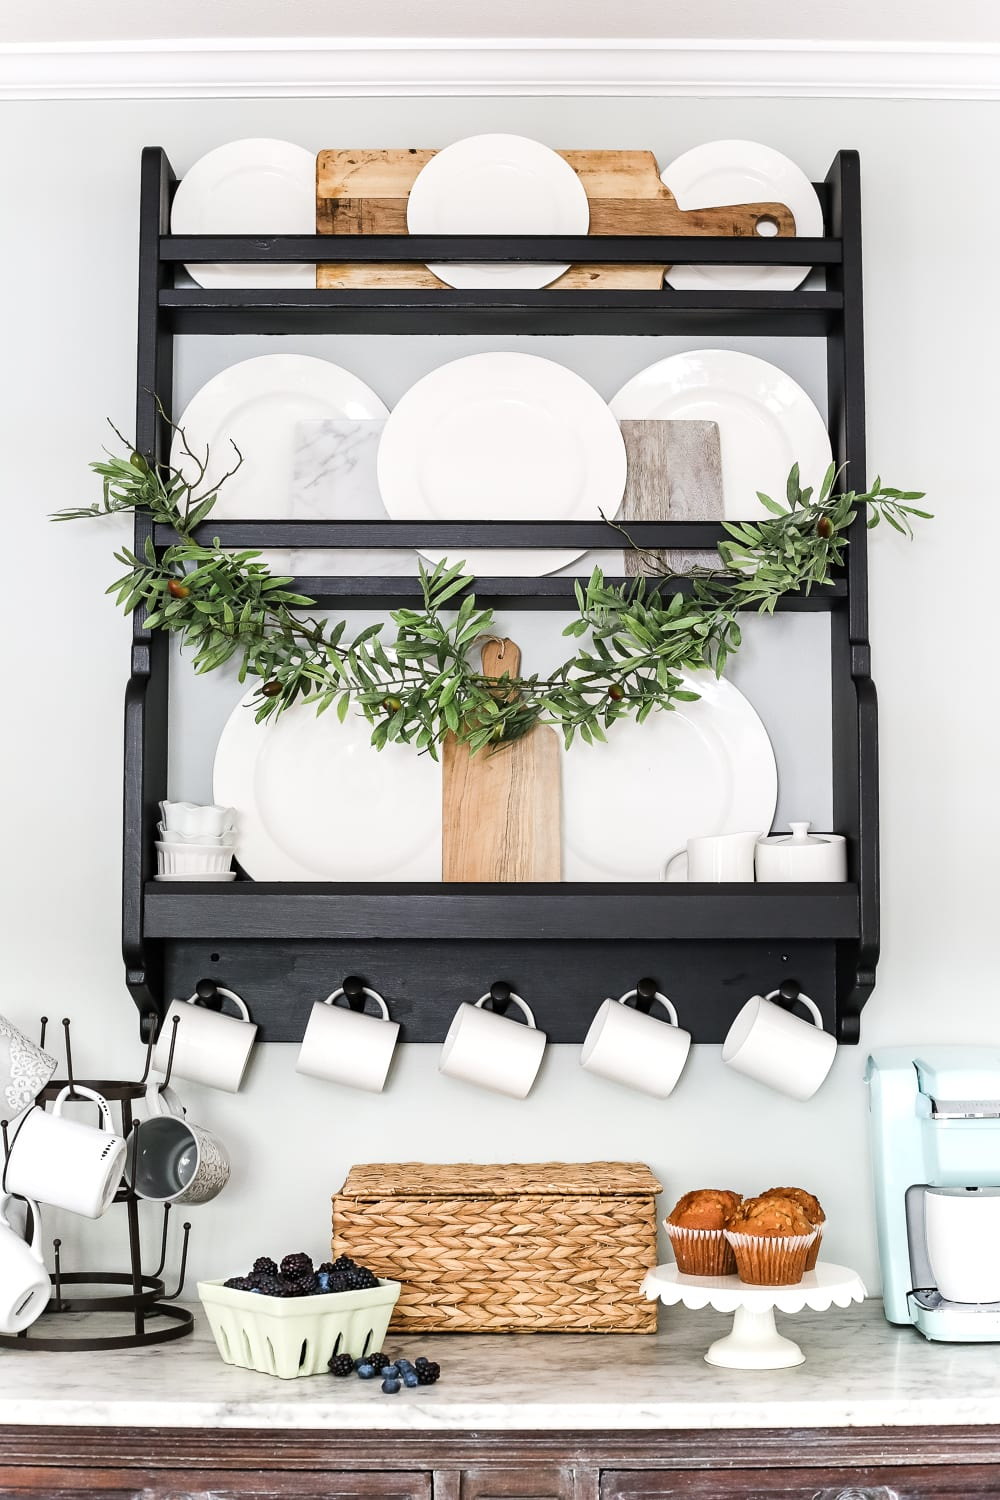 The Top 20 IKEA Items That Look High End For A Low Price To Decorate